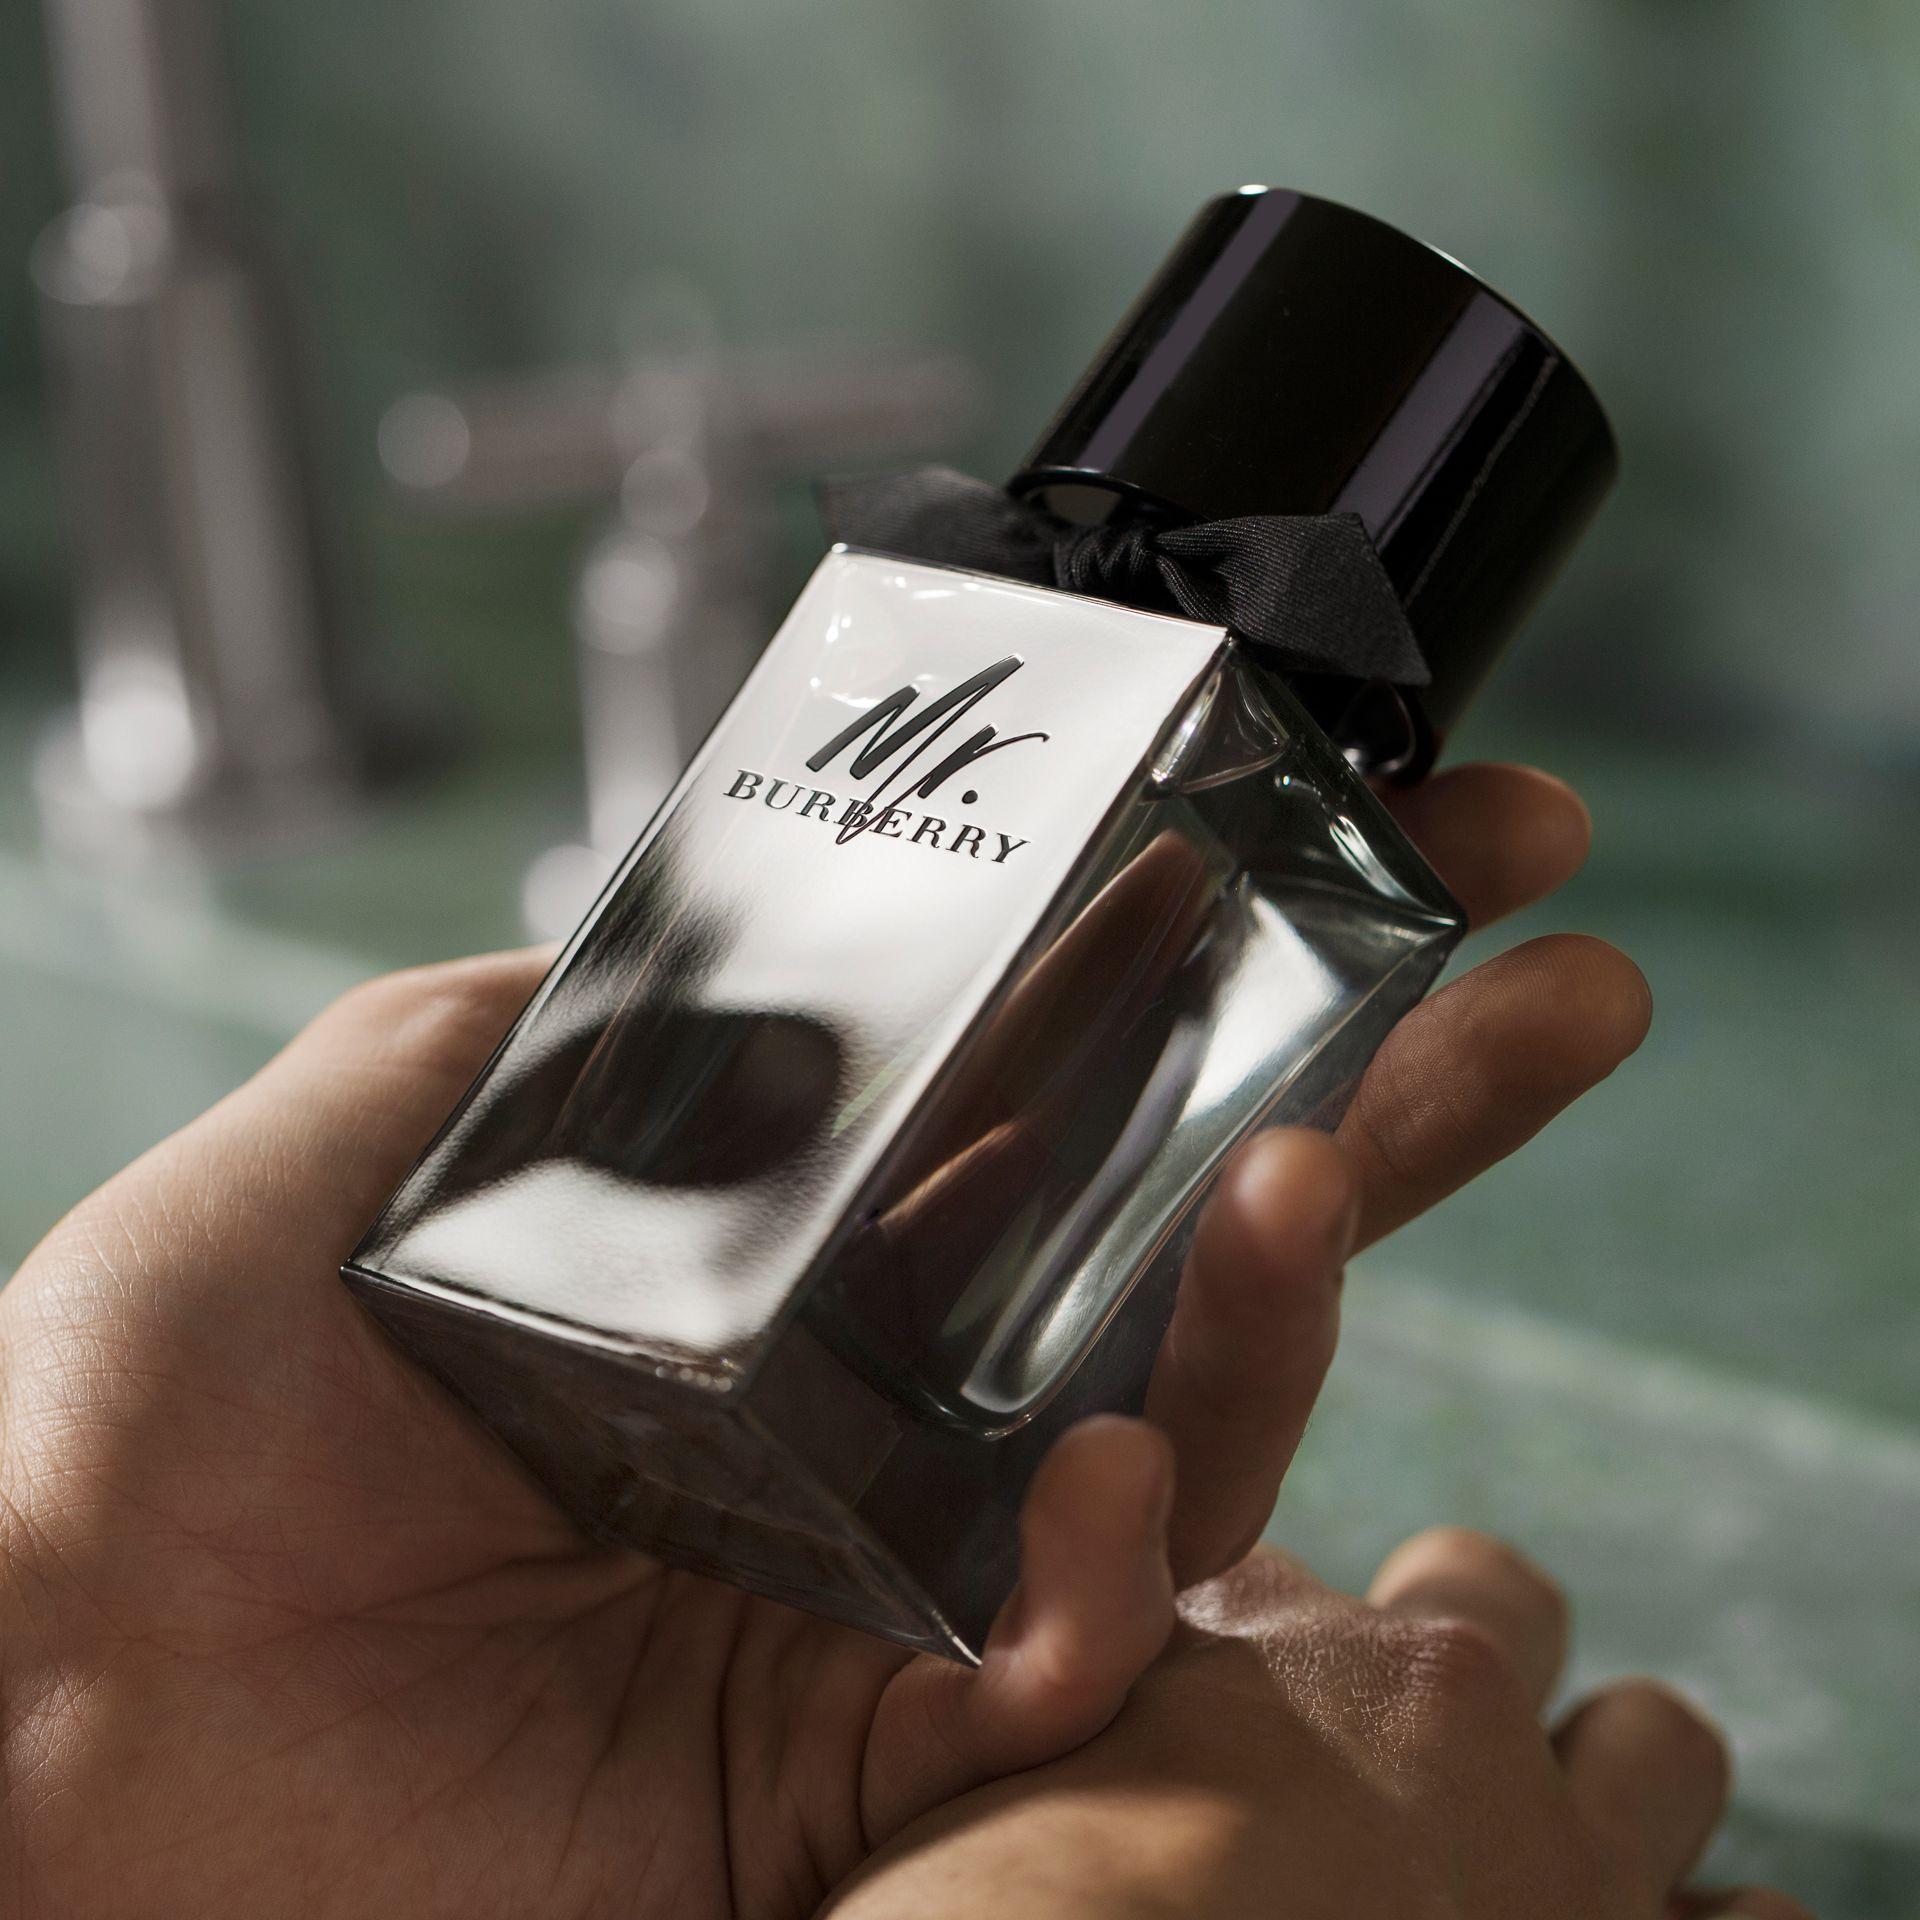 Mr. Burberry Eau de Toilette 100ml | Burberry Singapore - gallery image 1